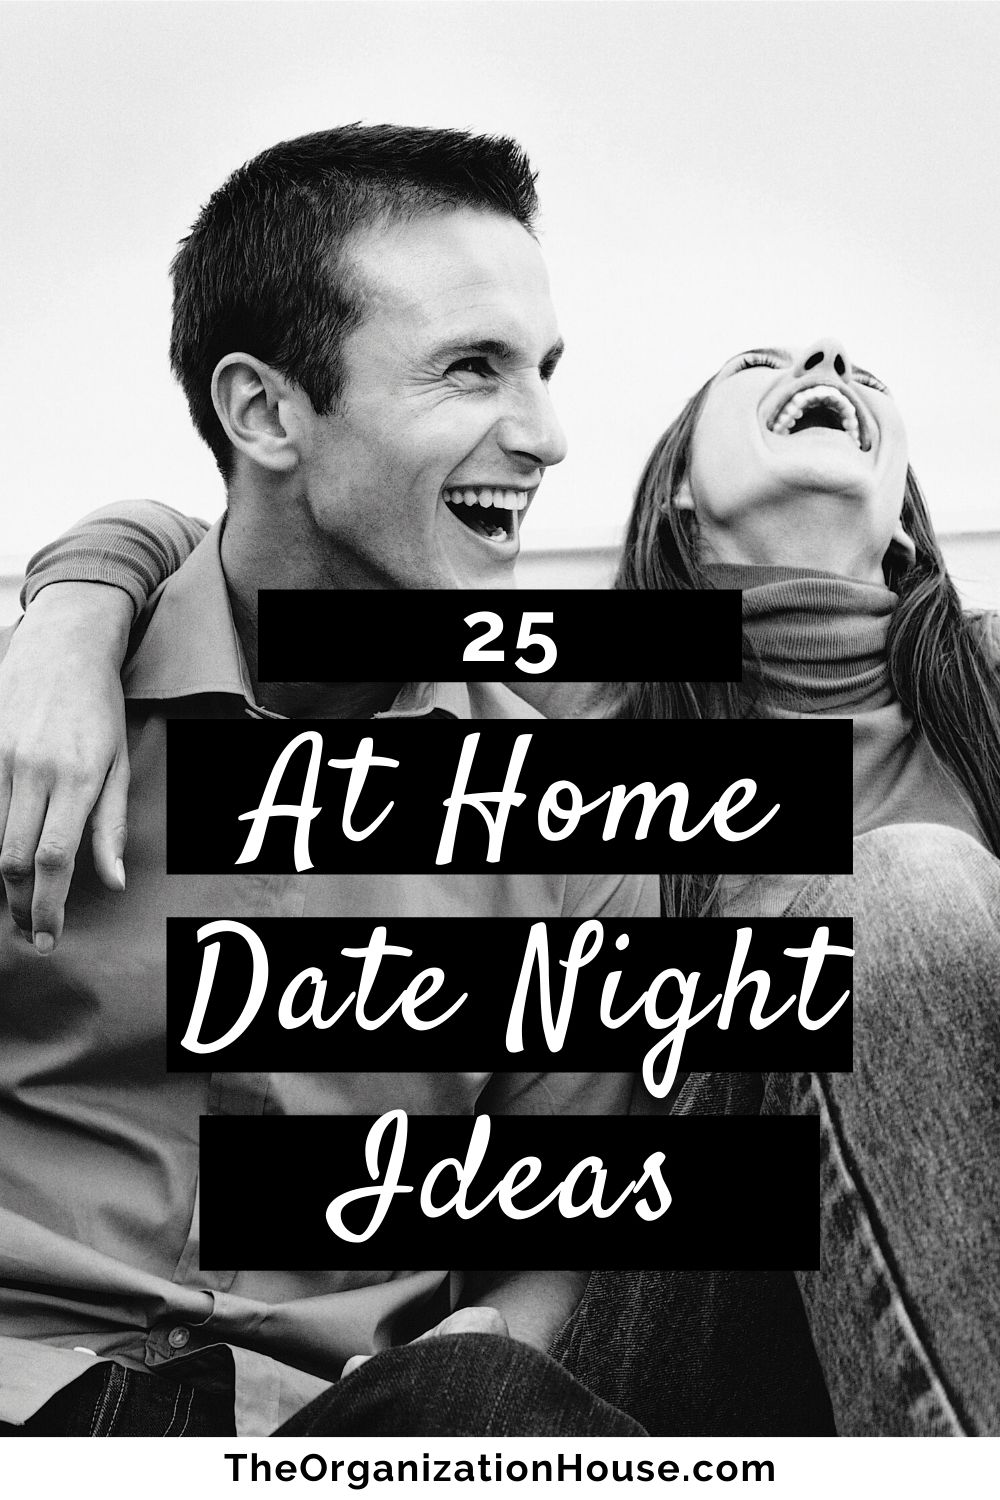 25 At Home Date Night Ideas for When You're Quarantined - The Organization House